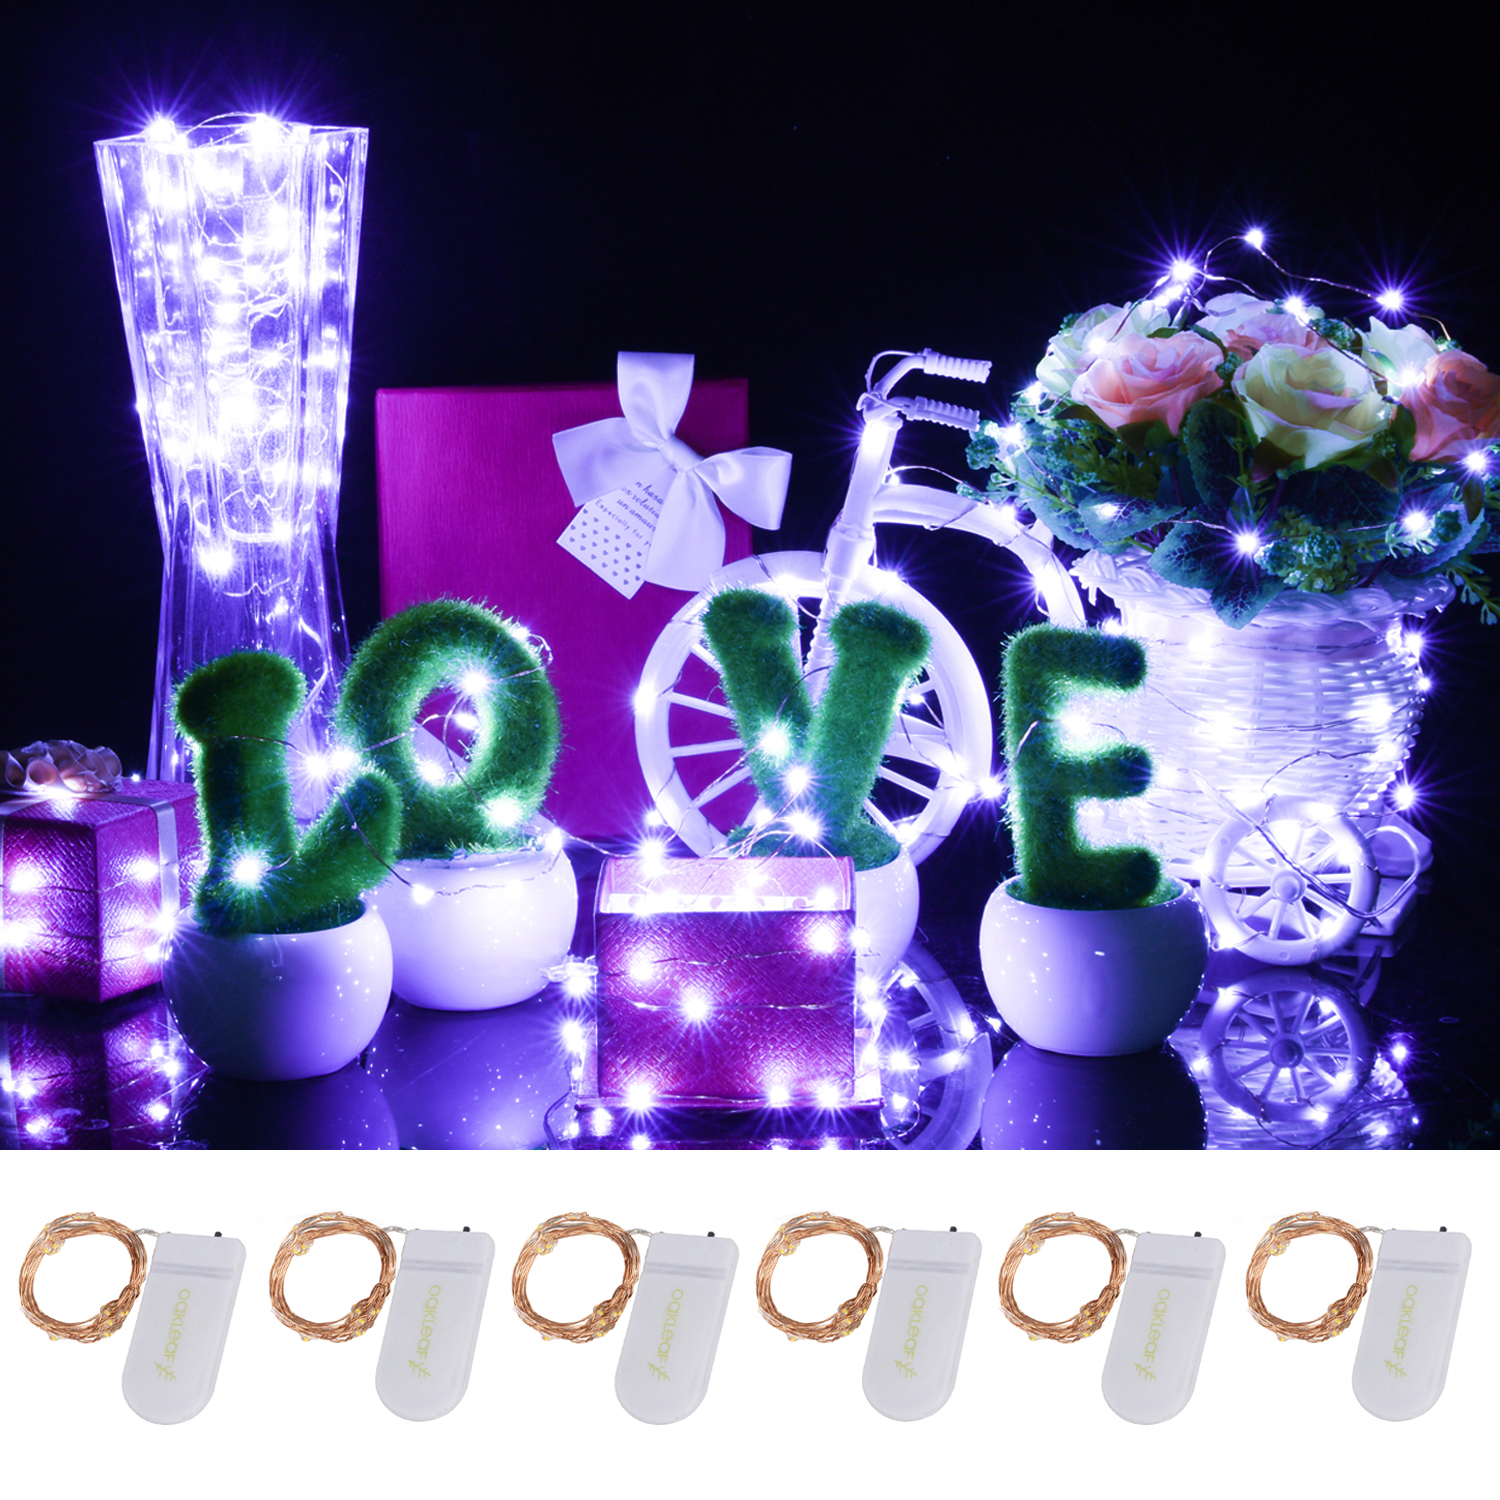 Oak Leaf 3.3ft Set of 6 Starry Lights 20 LED String Lights with 20 Fairy Bright LEDs for Home Wedding Party Christmas Table 6-pack,Purple